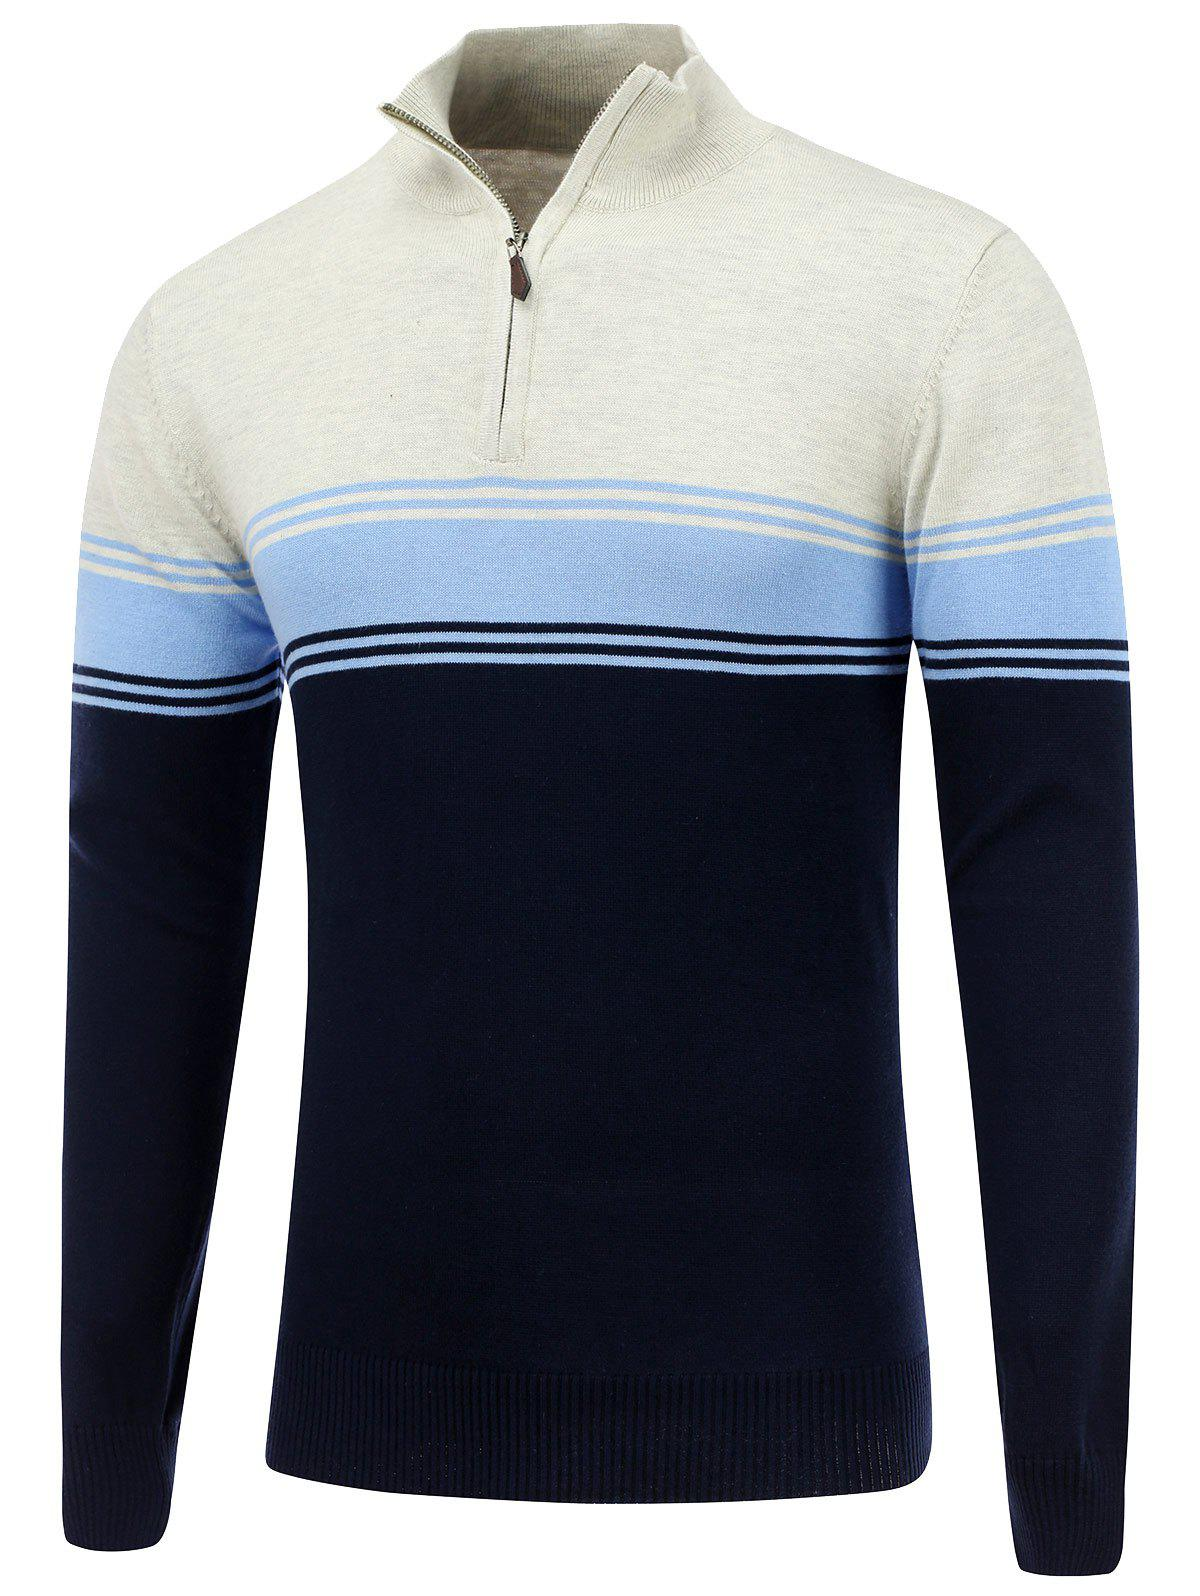 Striped Stand Collar Half Zip Sweater - CADETBLUE S